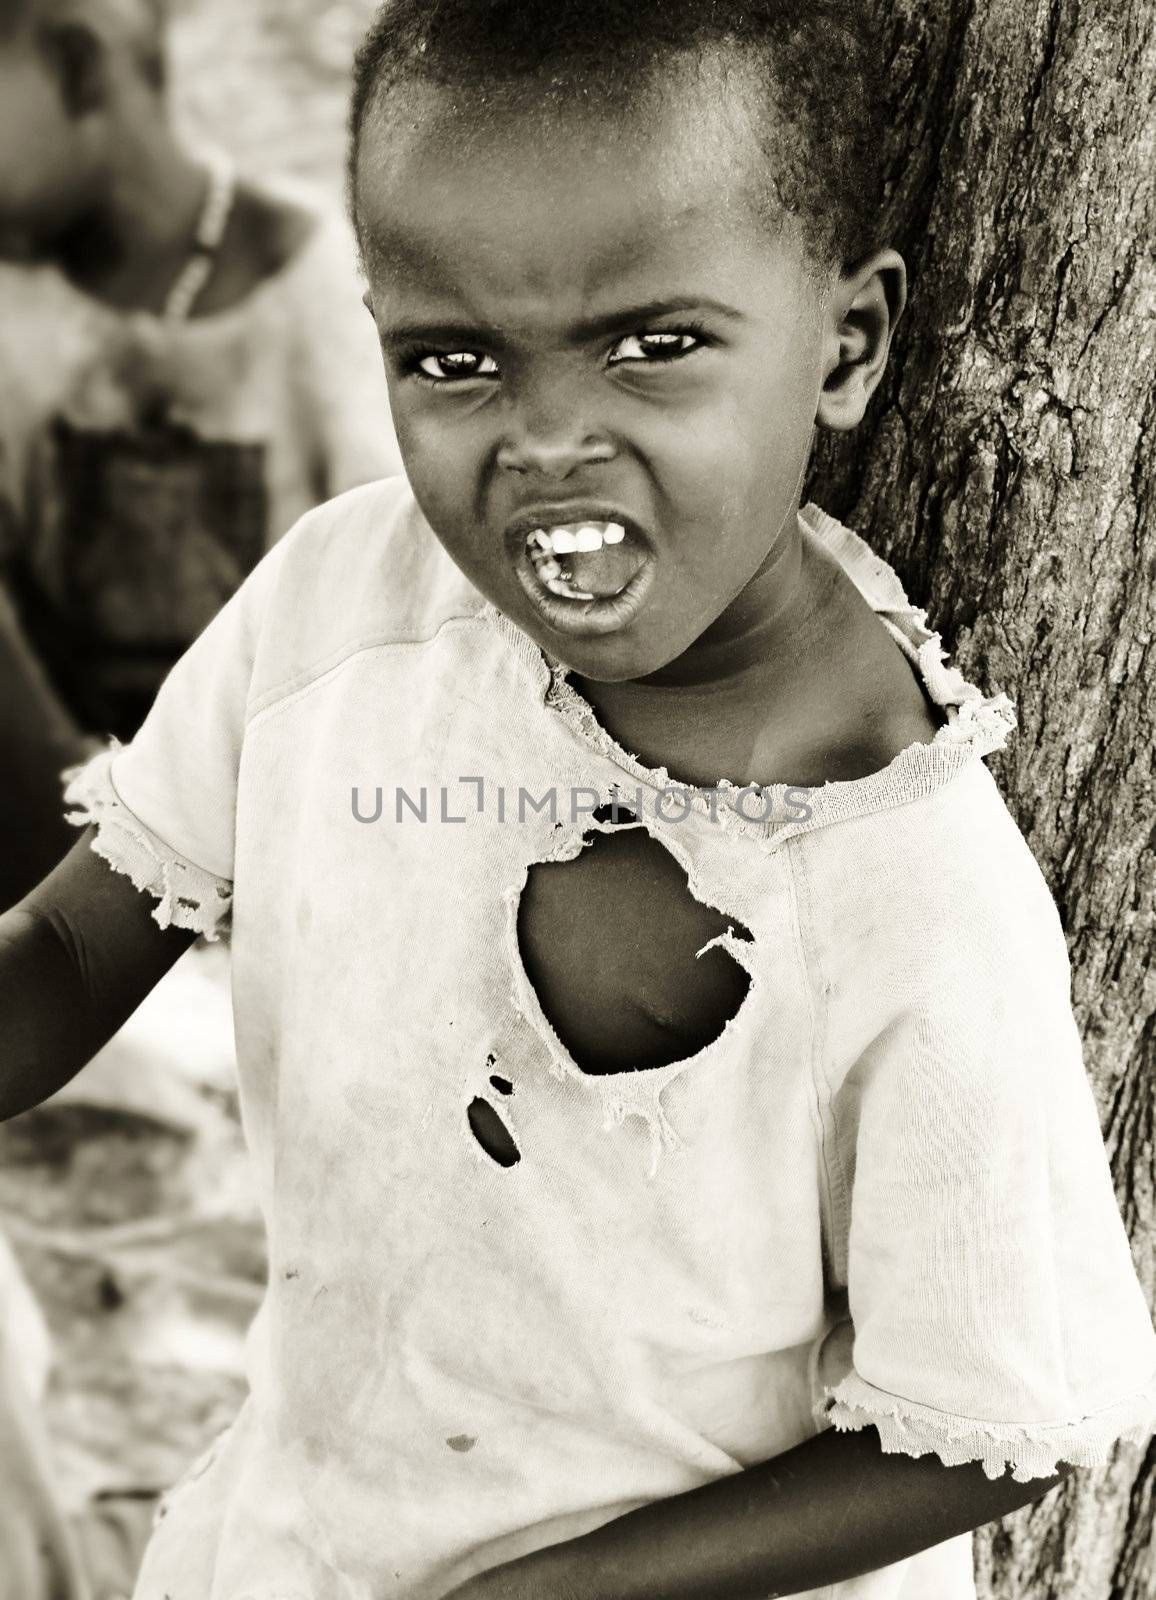 Portrait of African child expressing angryness. Editorial use only